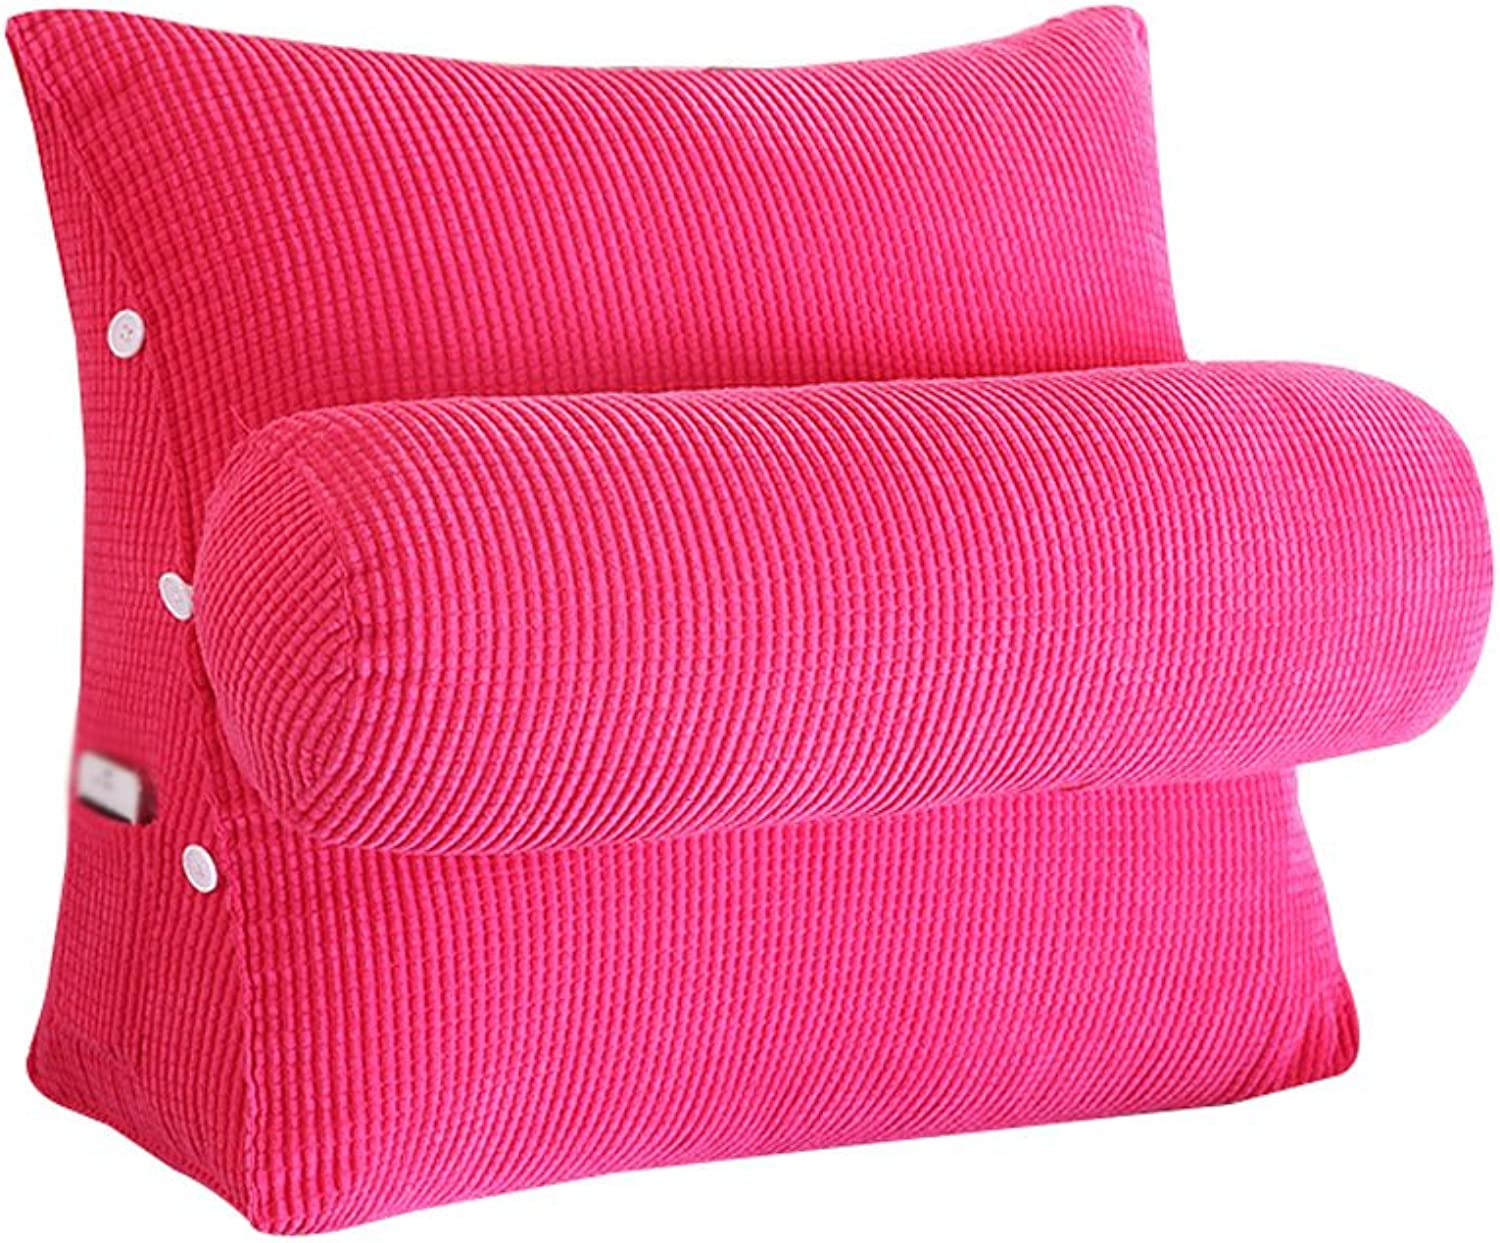 DDSS Bed cushion Corduroy Bed Triangle Pillow with Headrest Sofa Bed Headrest Lumbar Pillow Backrest Waist Pads Bay Window Cushion Back Office Pillow  -  (color   Pink, Size   45cm22cm40cm)